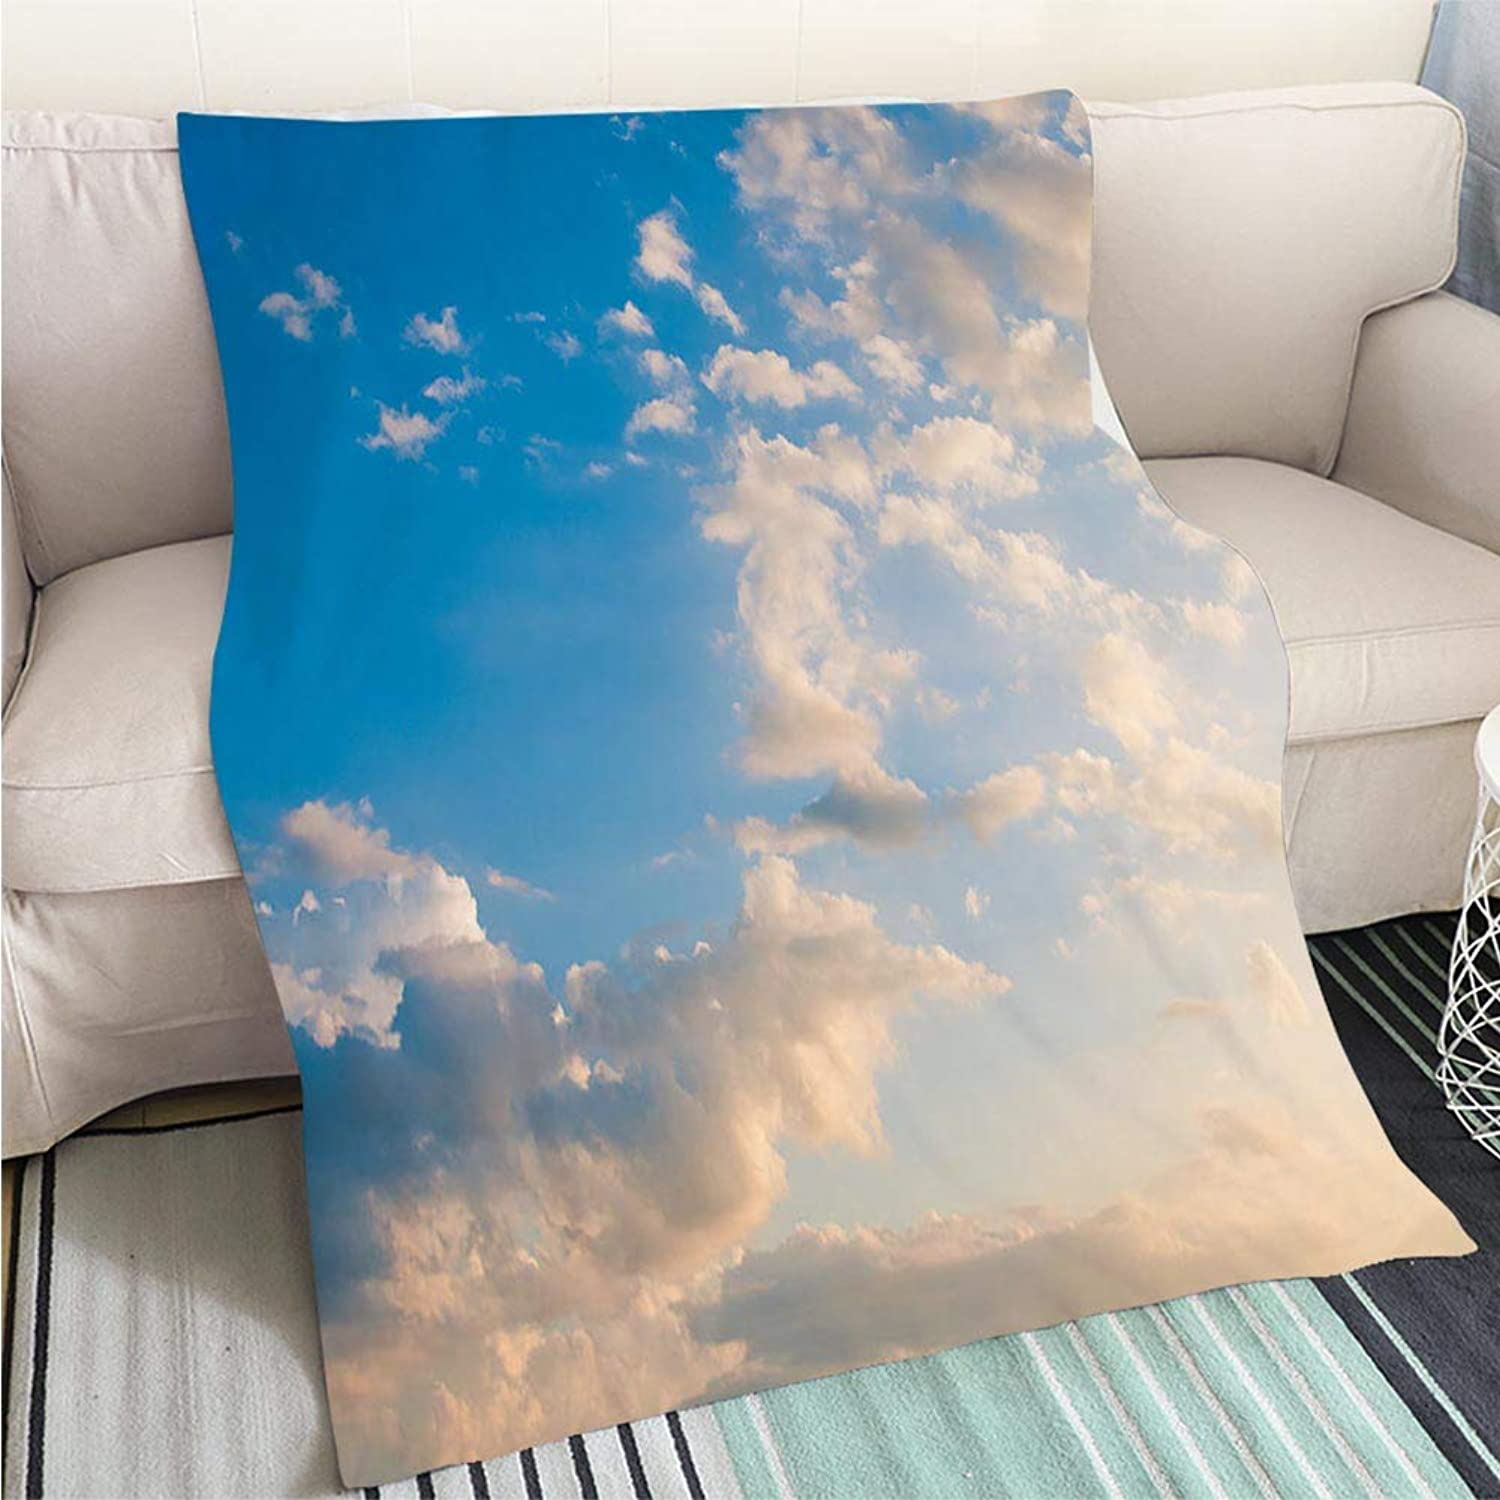 BEICICI Art Design Photos Cool Quilt Damatic Sunset Sky Fun Design All-Season Blanket Bed or Couch